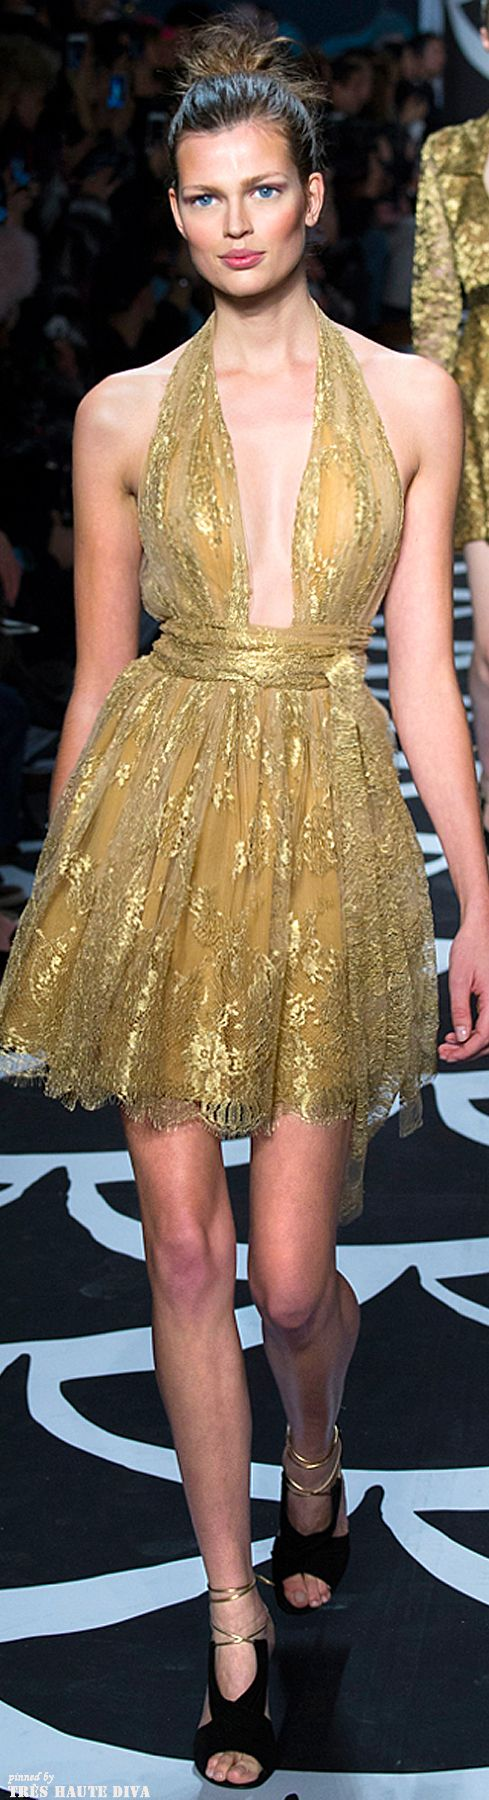 The world of Miss Millionairess: NYFW Diane von Furstenberg Fall 2014 | gold cocktail dress